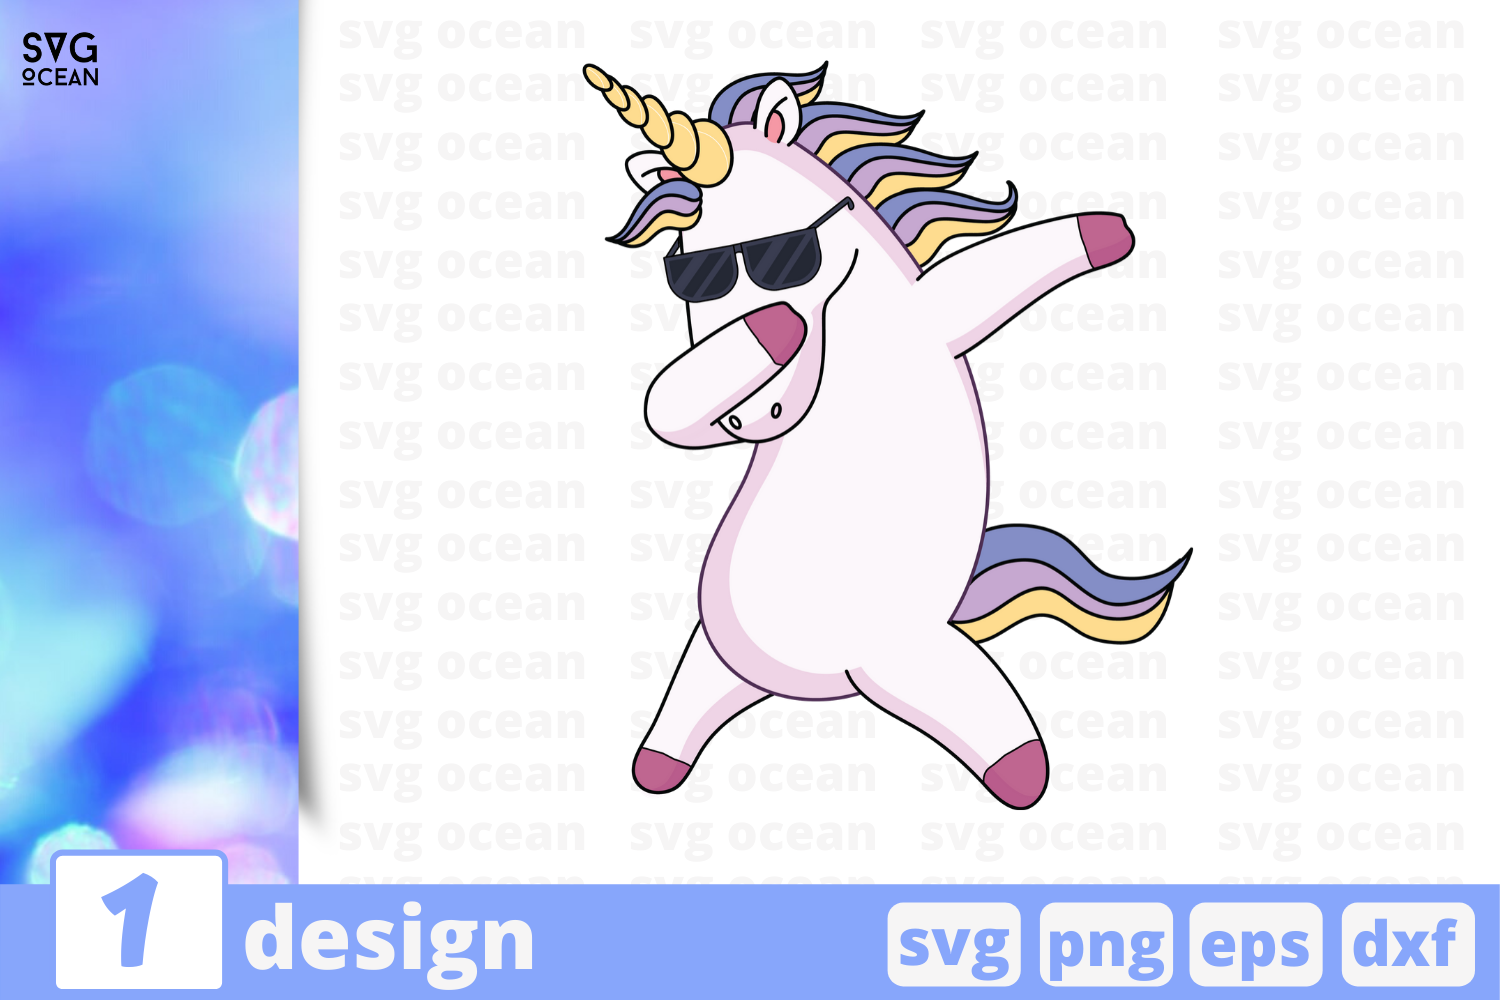 Download Free Unicorn Graphic By Svgocean Creative Fabrica for Cricut Explore, Silhouette and other cutting machines.